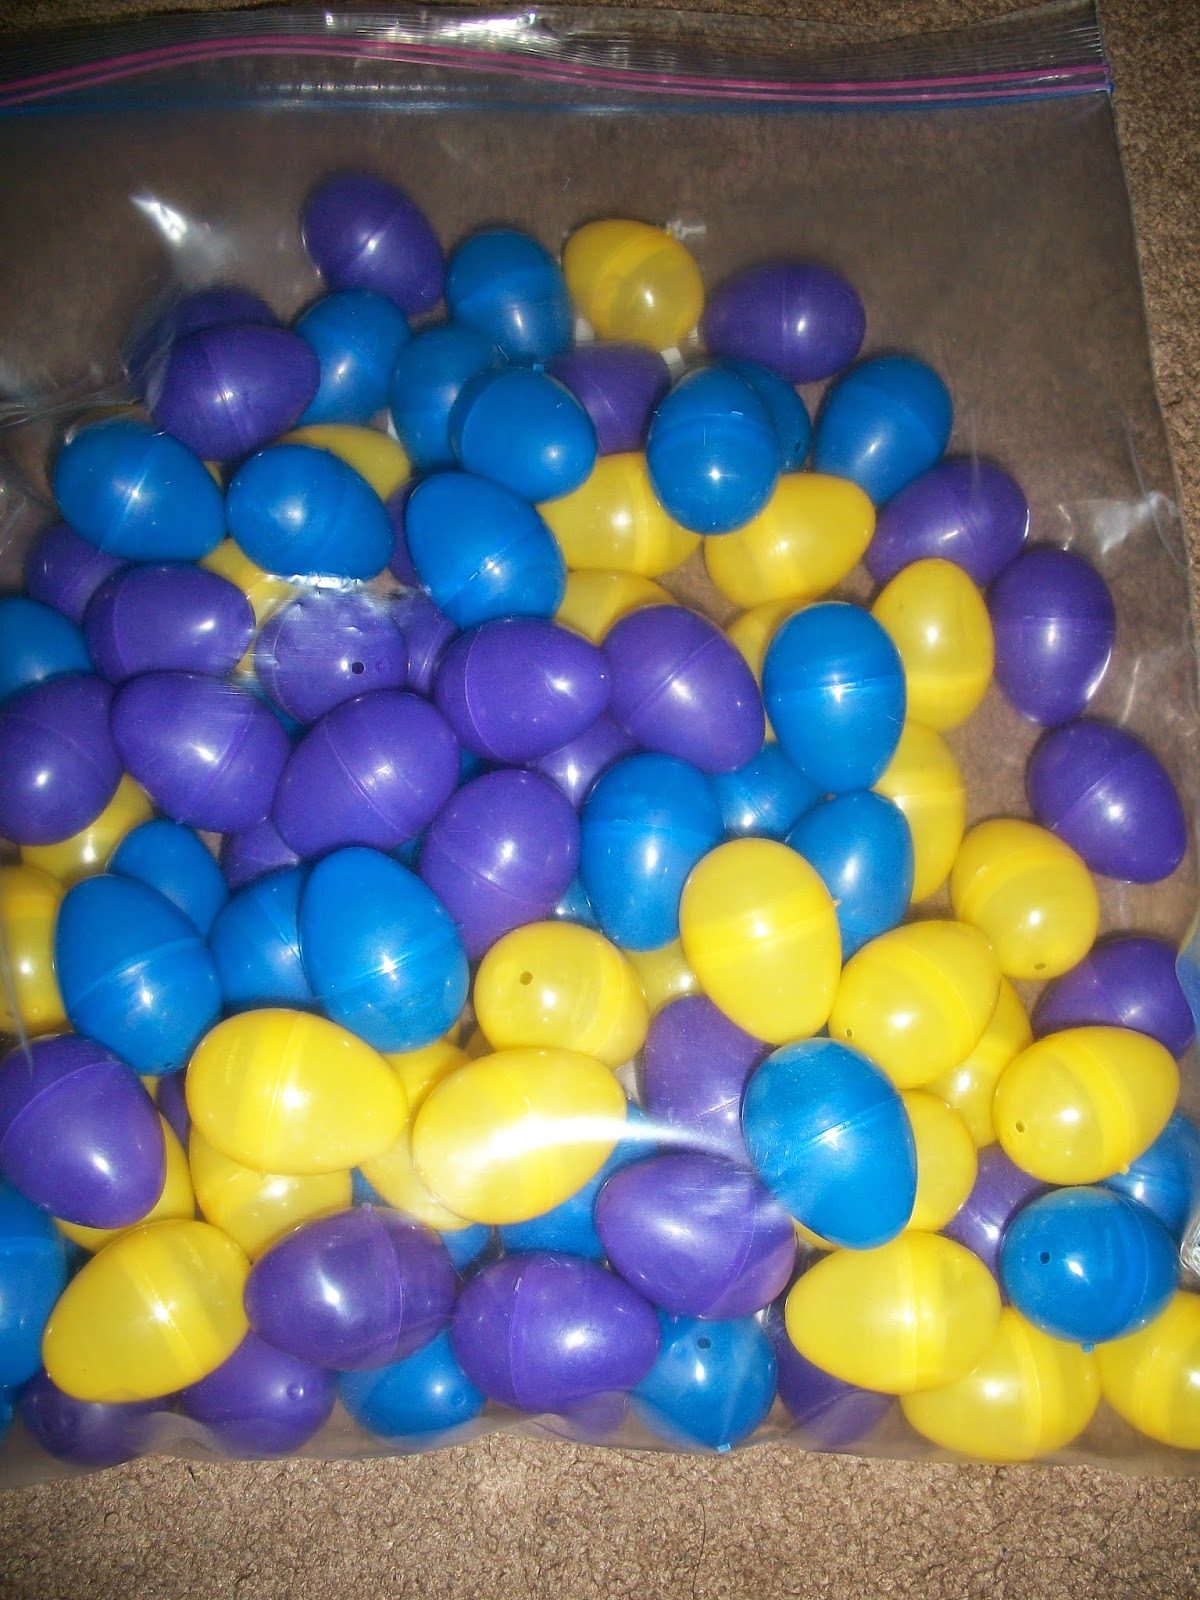 yellow, blue and purple plastic easter eggs